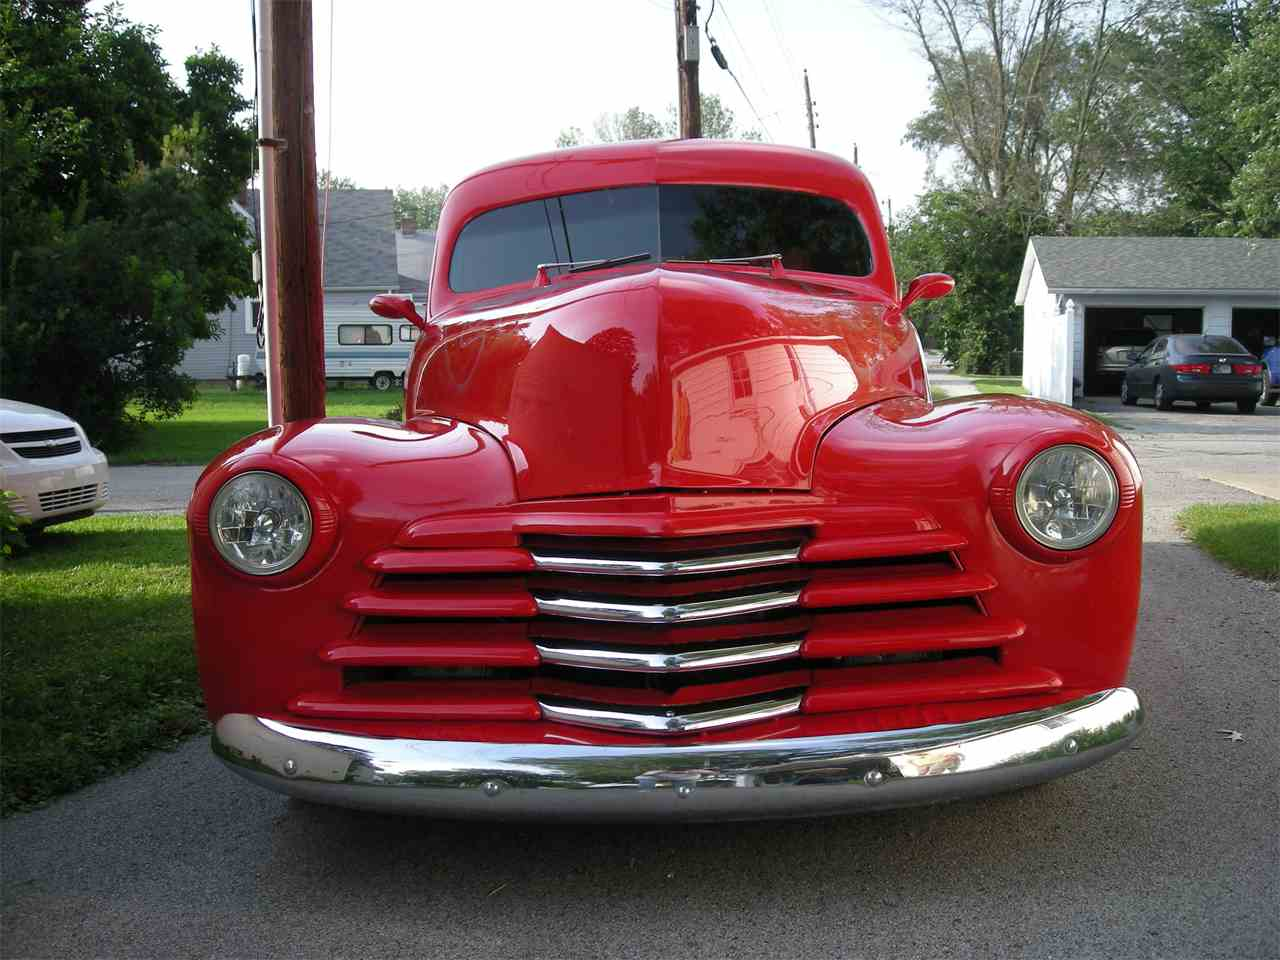 Large Picture of Classic '48 Chevrolet Sedan Delivery Offered by a Private Seller - MXZ2